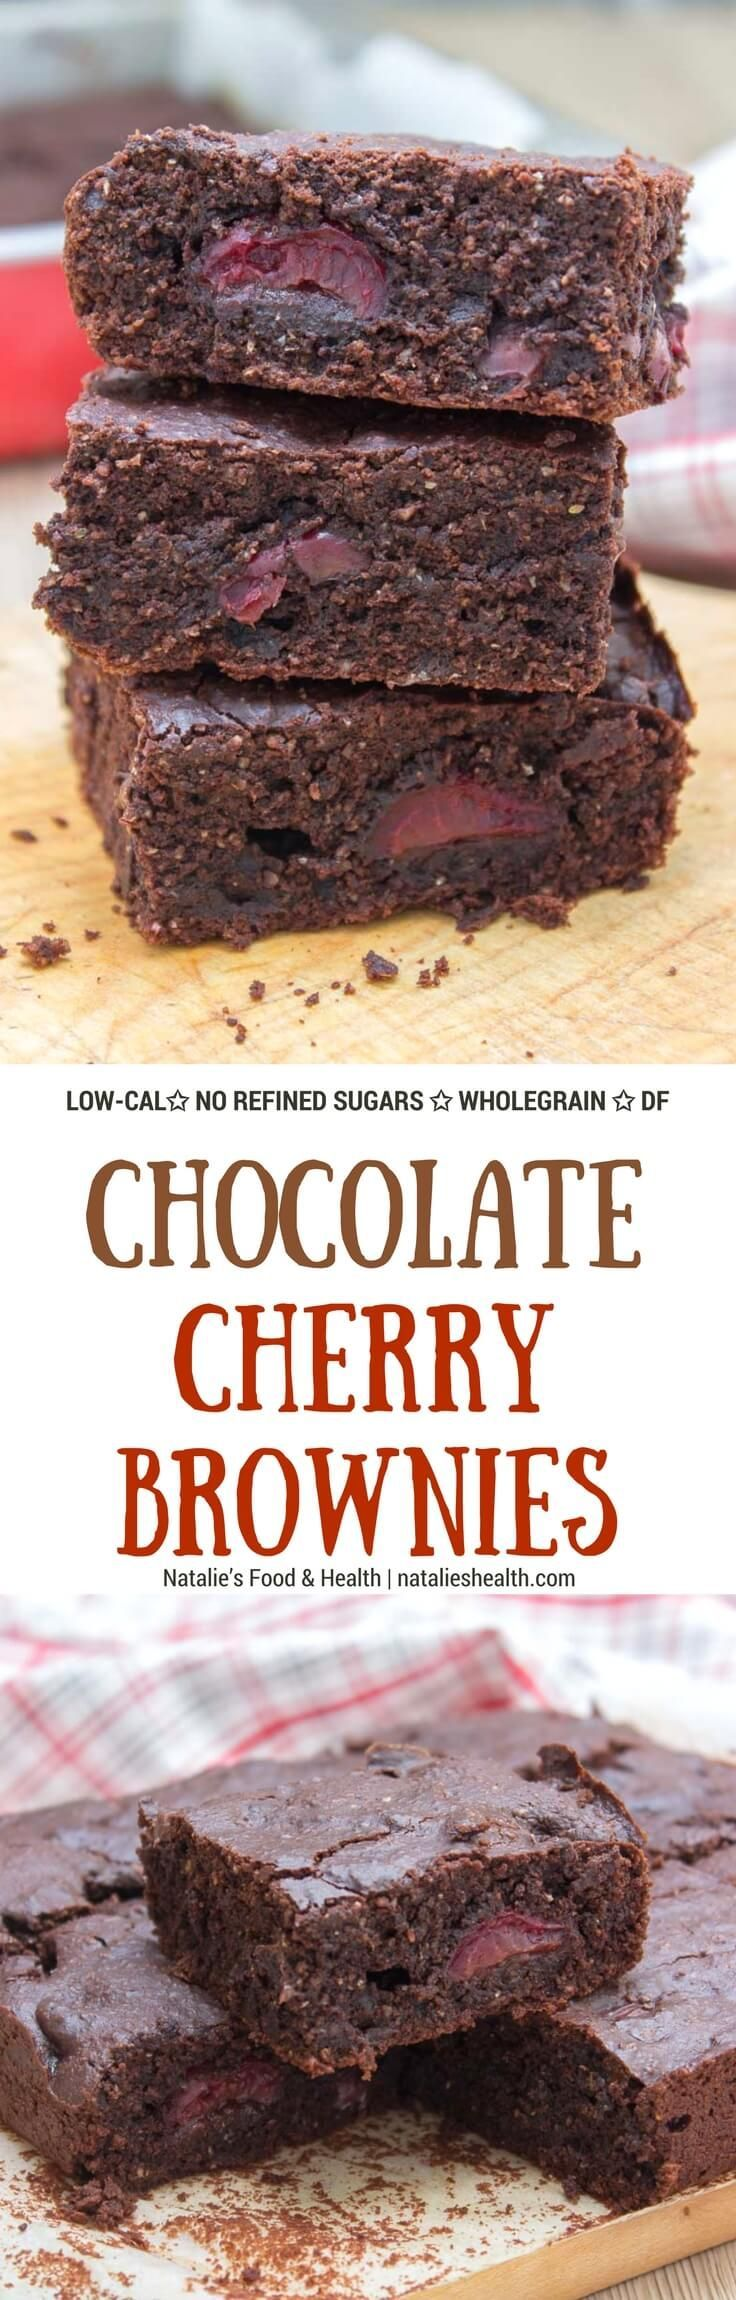 Rich, decadent, and chocolatey, these refined sugar-free Dark Chocolate Cherry Brownies are destined to delight you. Made with all HEALTHY ingredients, loaded with dark chocolate and sweet cherries, these brownies are truly a chocolate lover's dream! #hea